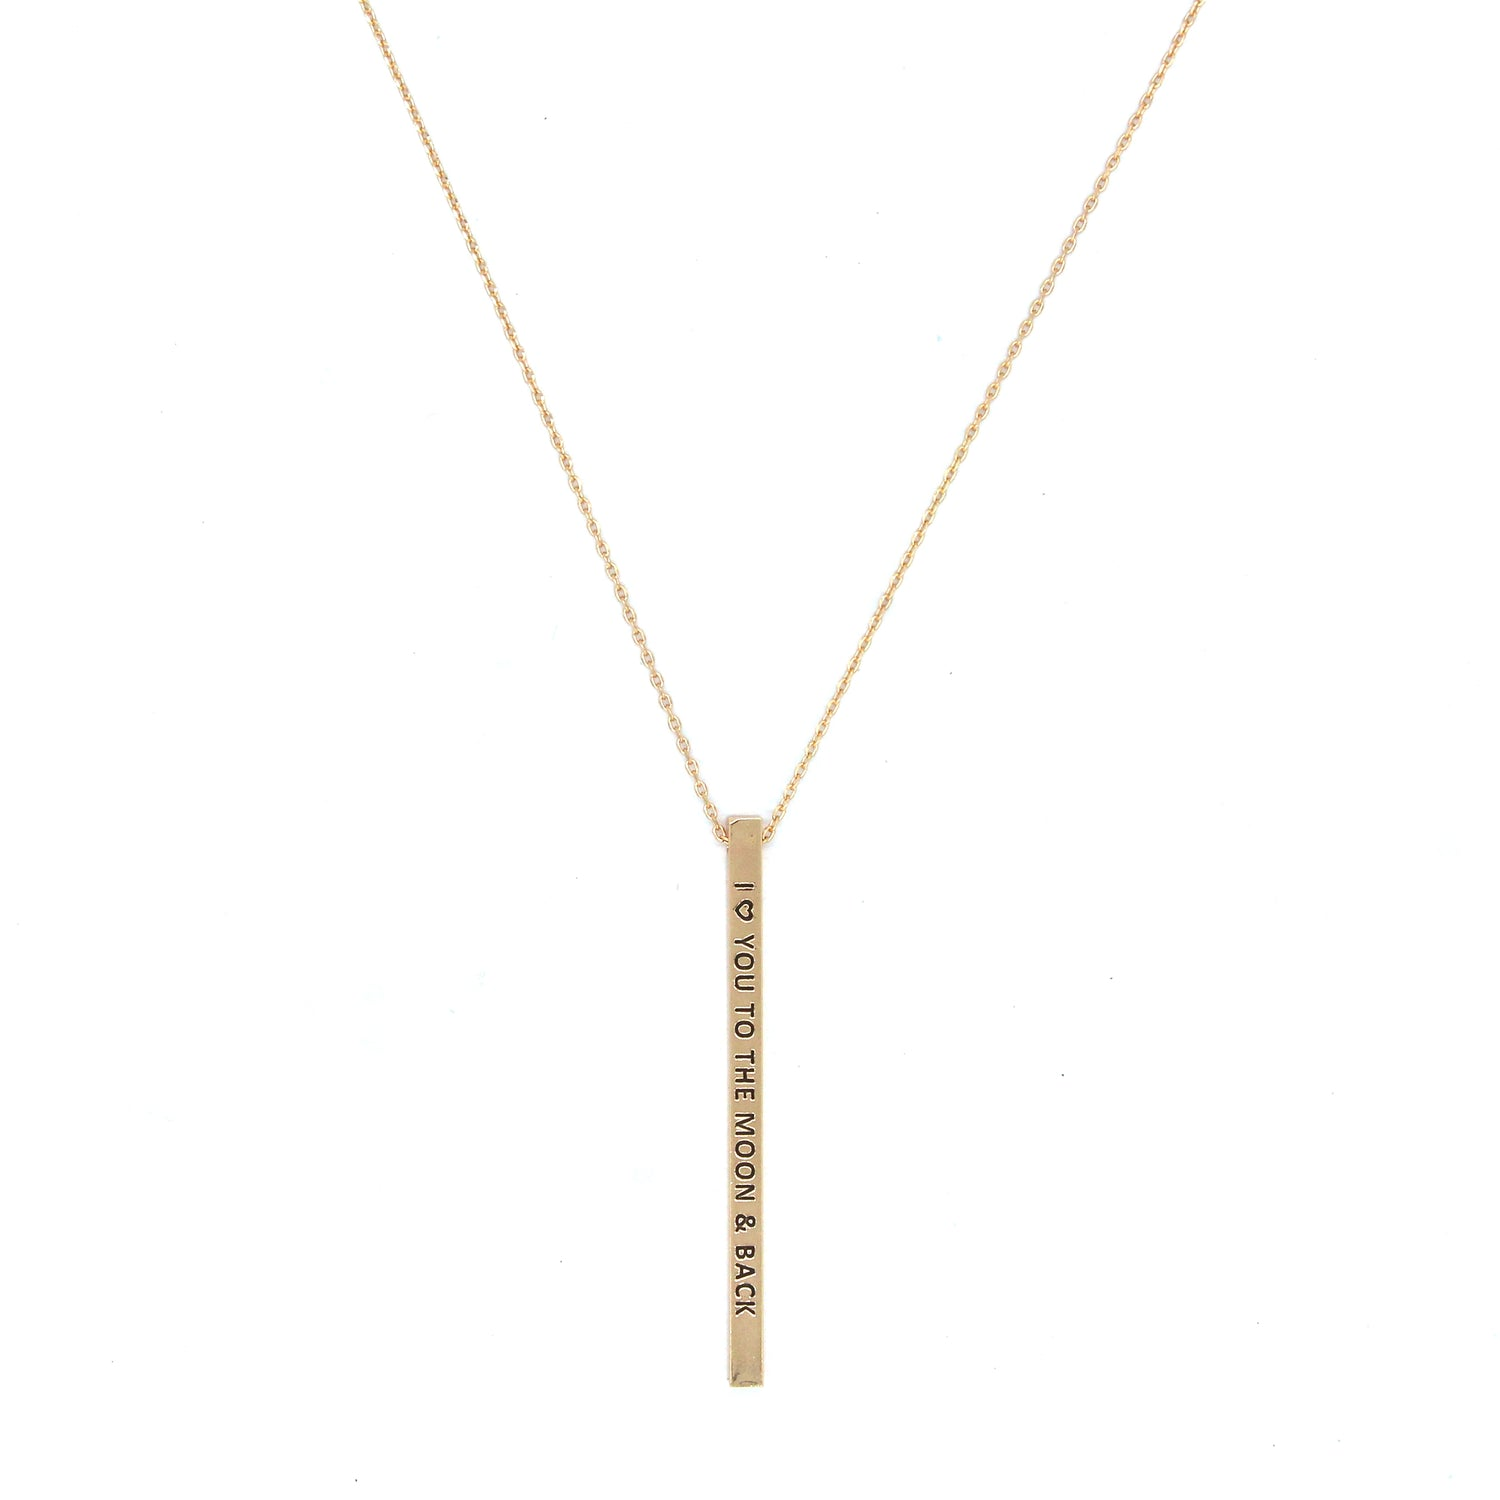 I LOVE YOU TO THE MOON & BACK Engraved Bar Necklace- Gold